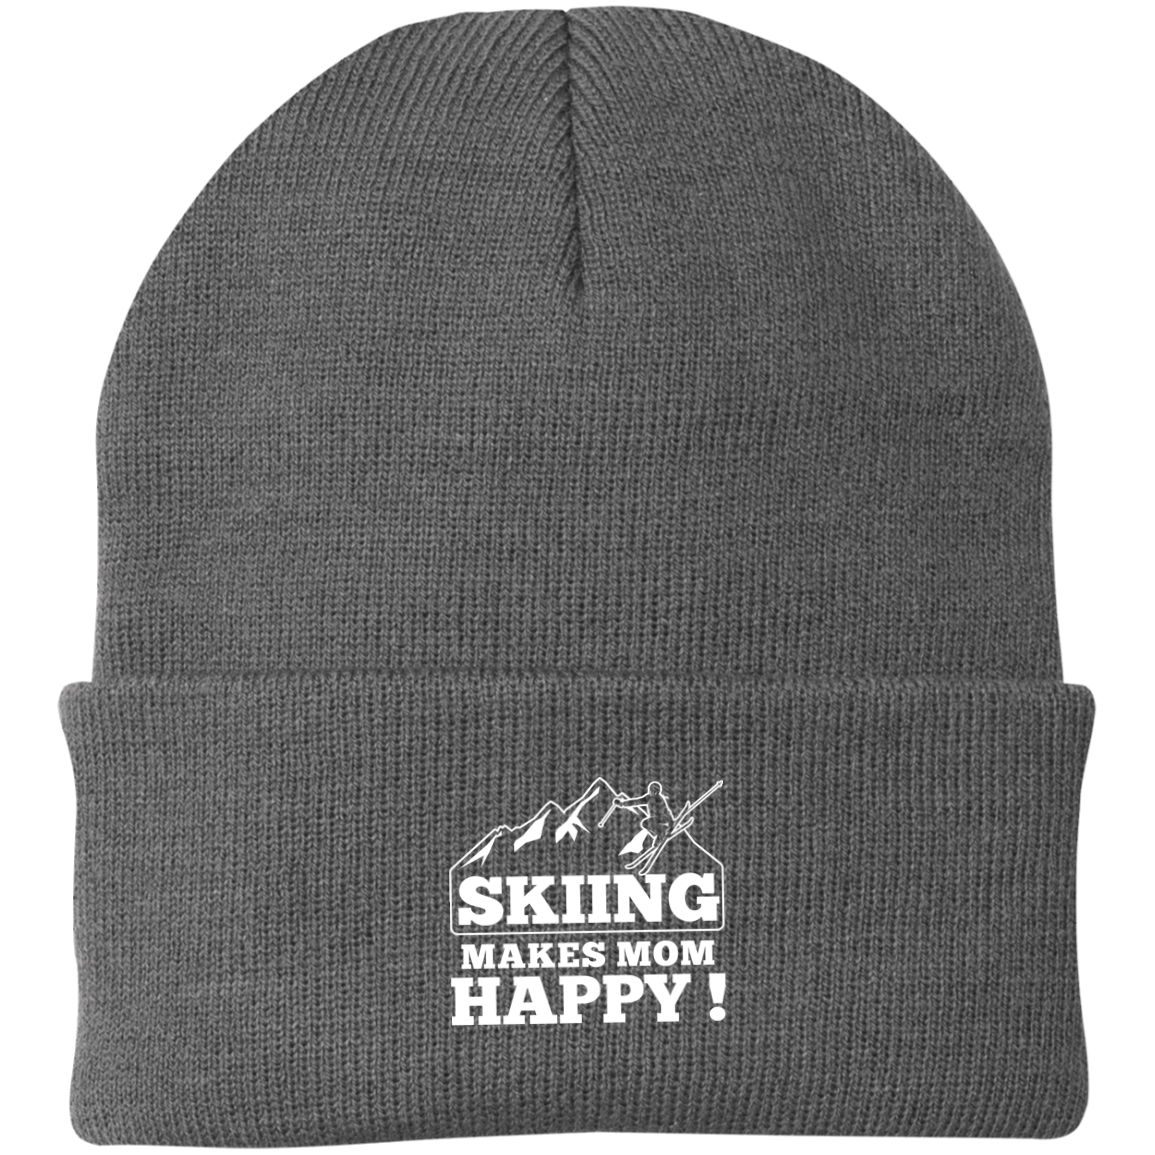 Skiing Makes Mom Happy Knit Cap - Powderaddicts